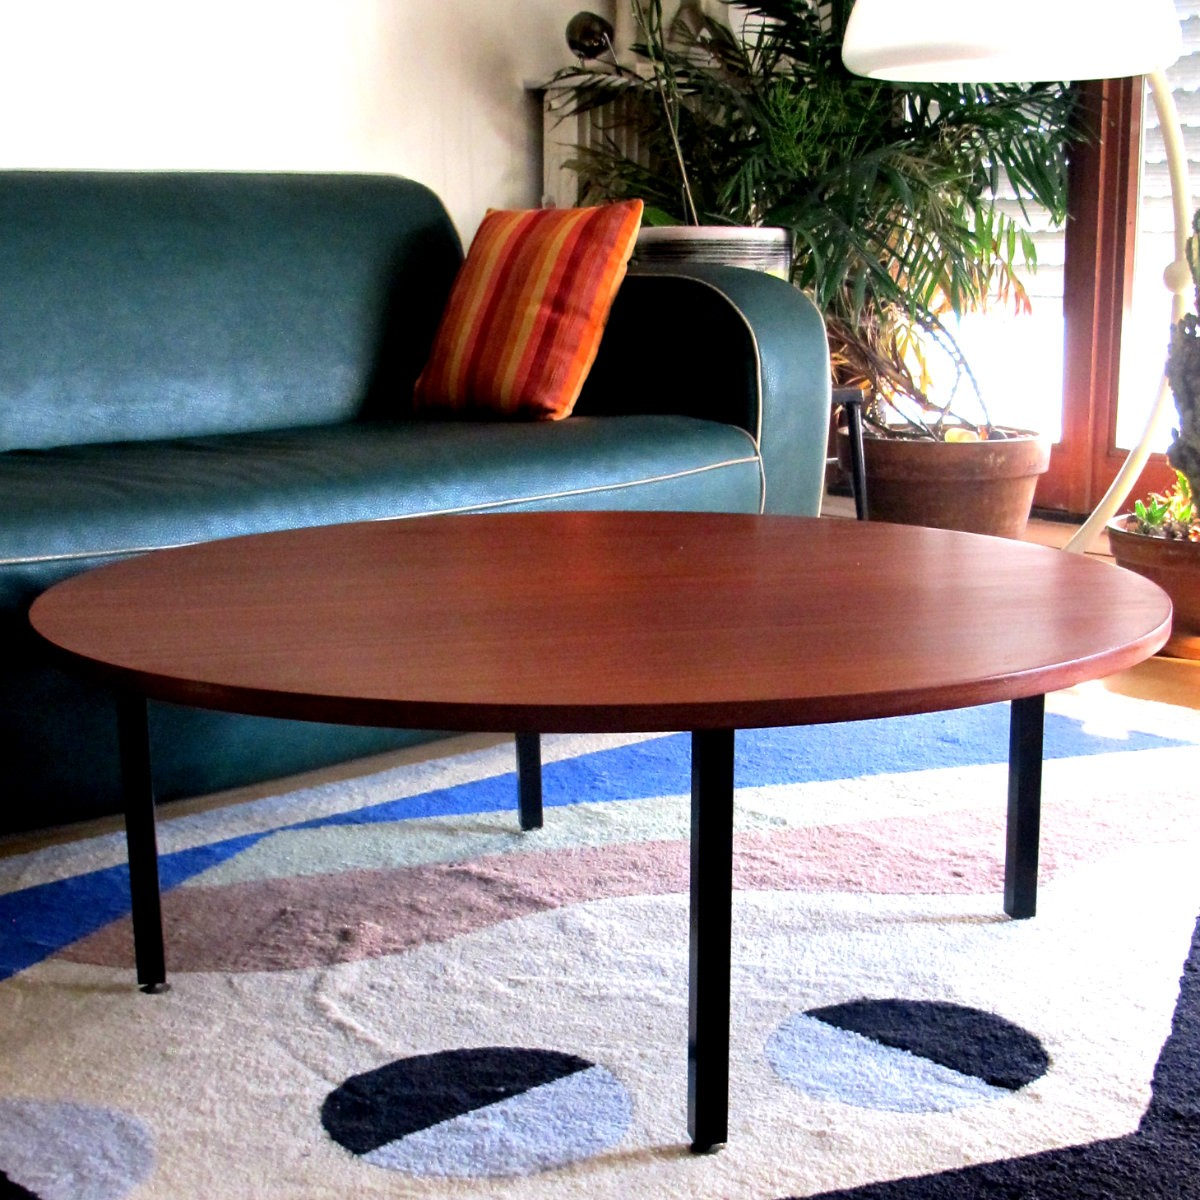 Scandinavian Teak Coffee Table: Scandinavian Coffee Table In Teak